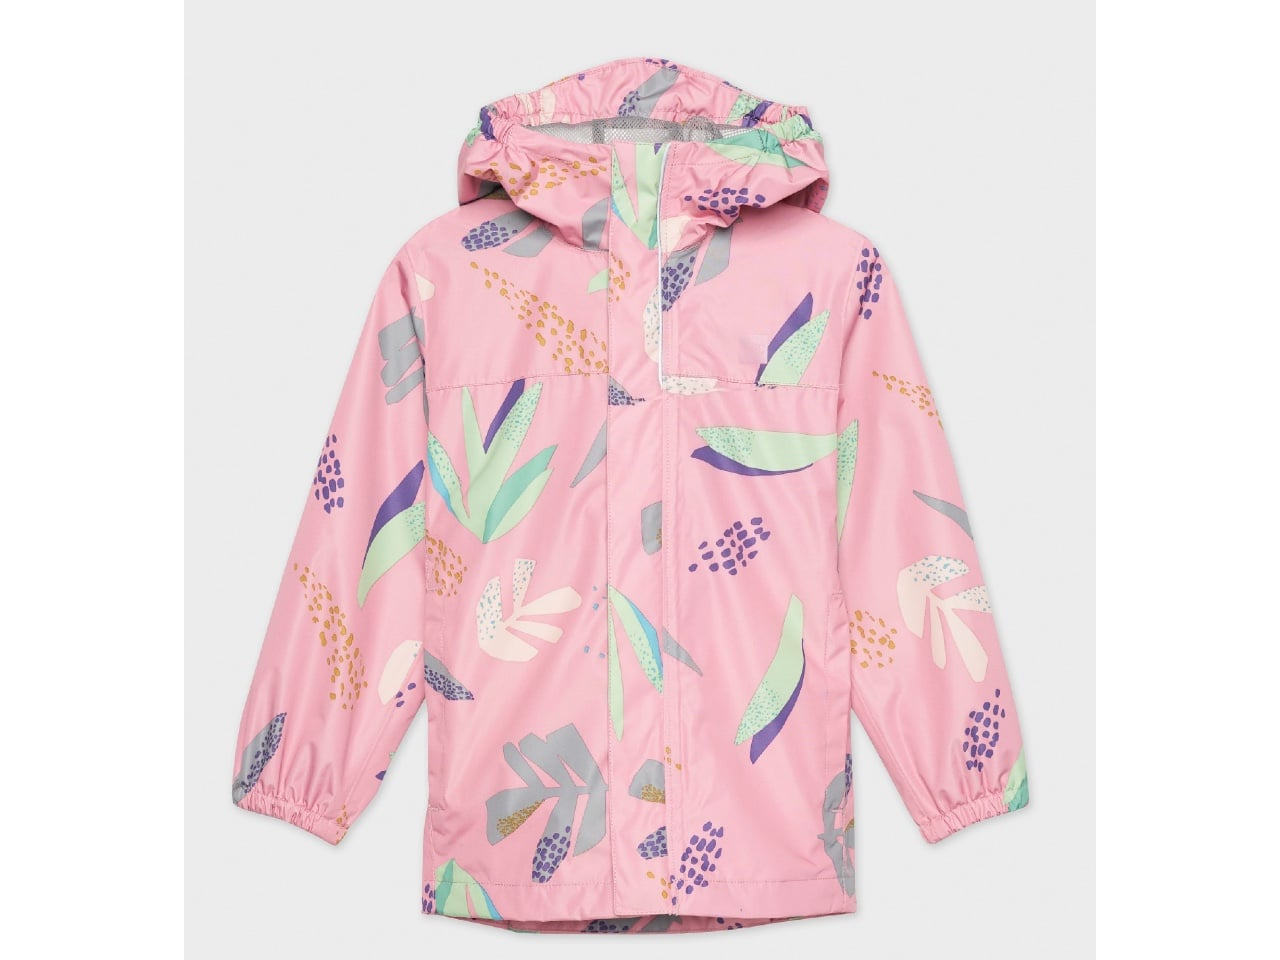 pink rain coat with colourful foliage motif